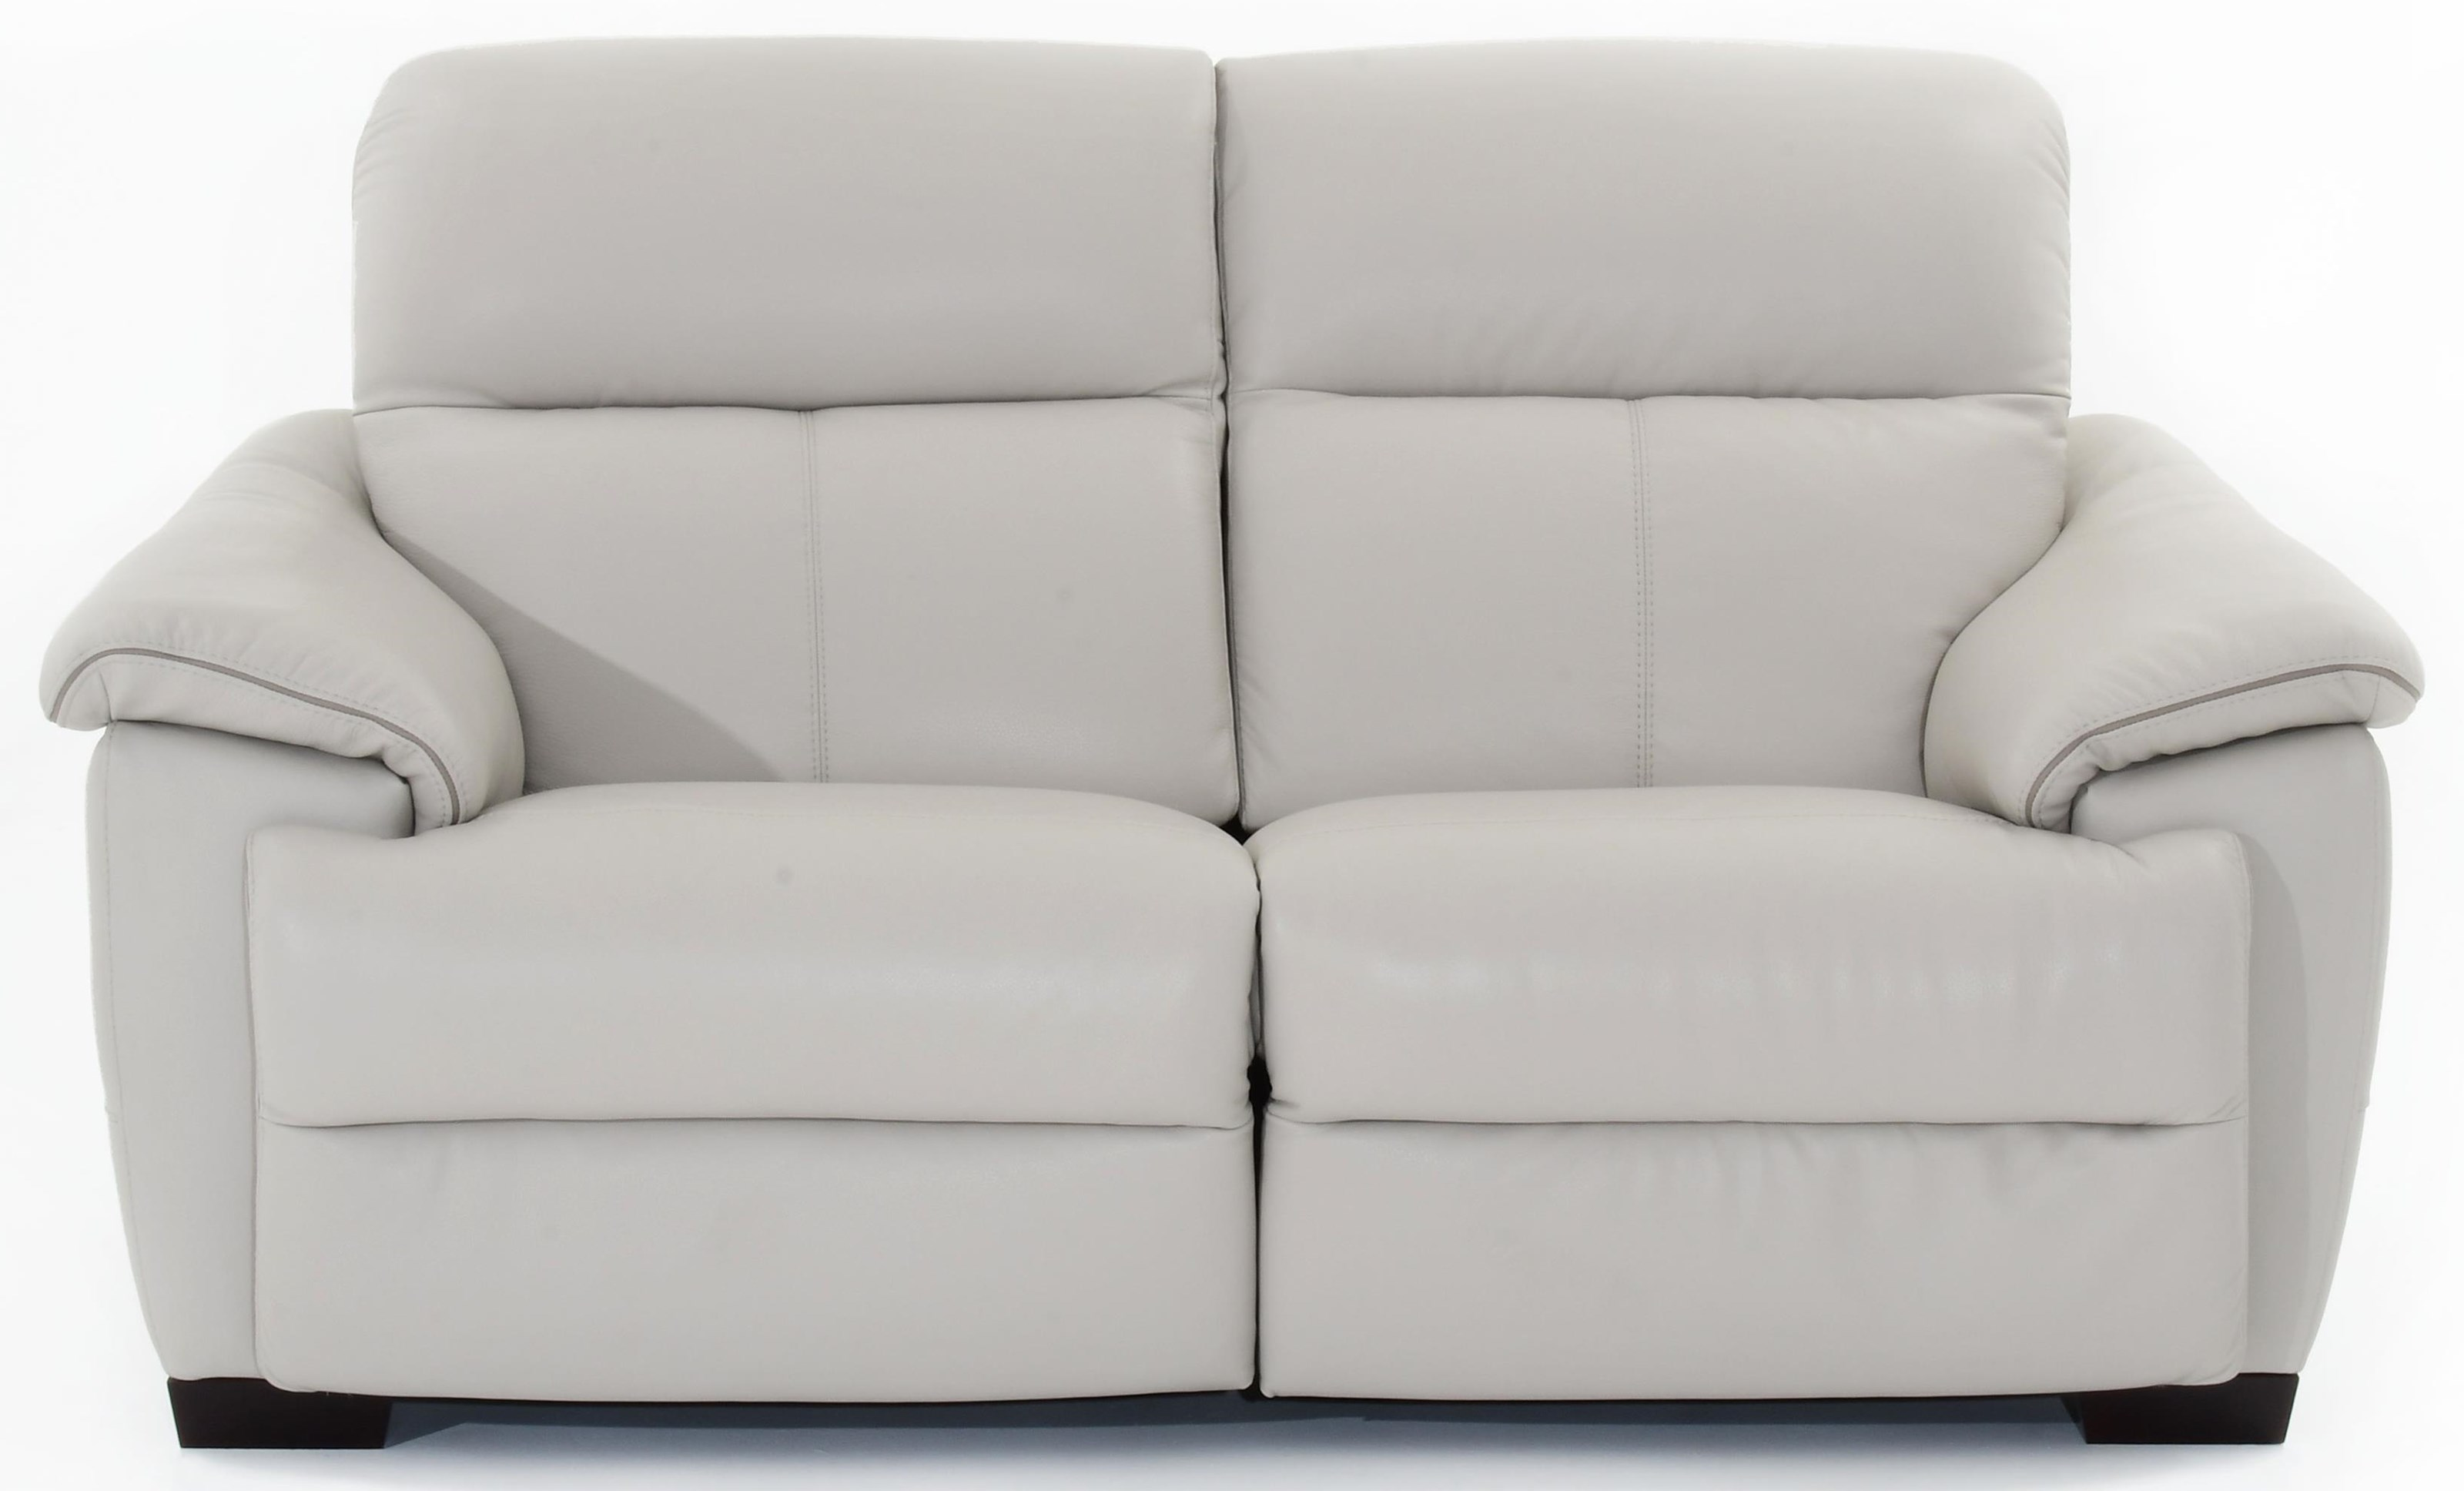 Natuzzi Editions Potenza Wall Hugger Power Reclining Sectional - Item Number: C063-N00+N02 1581sp-18 15C3